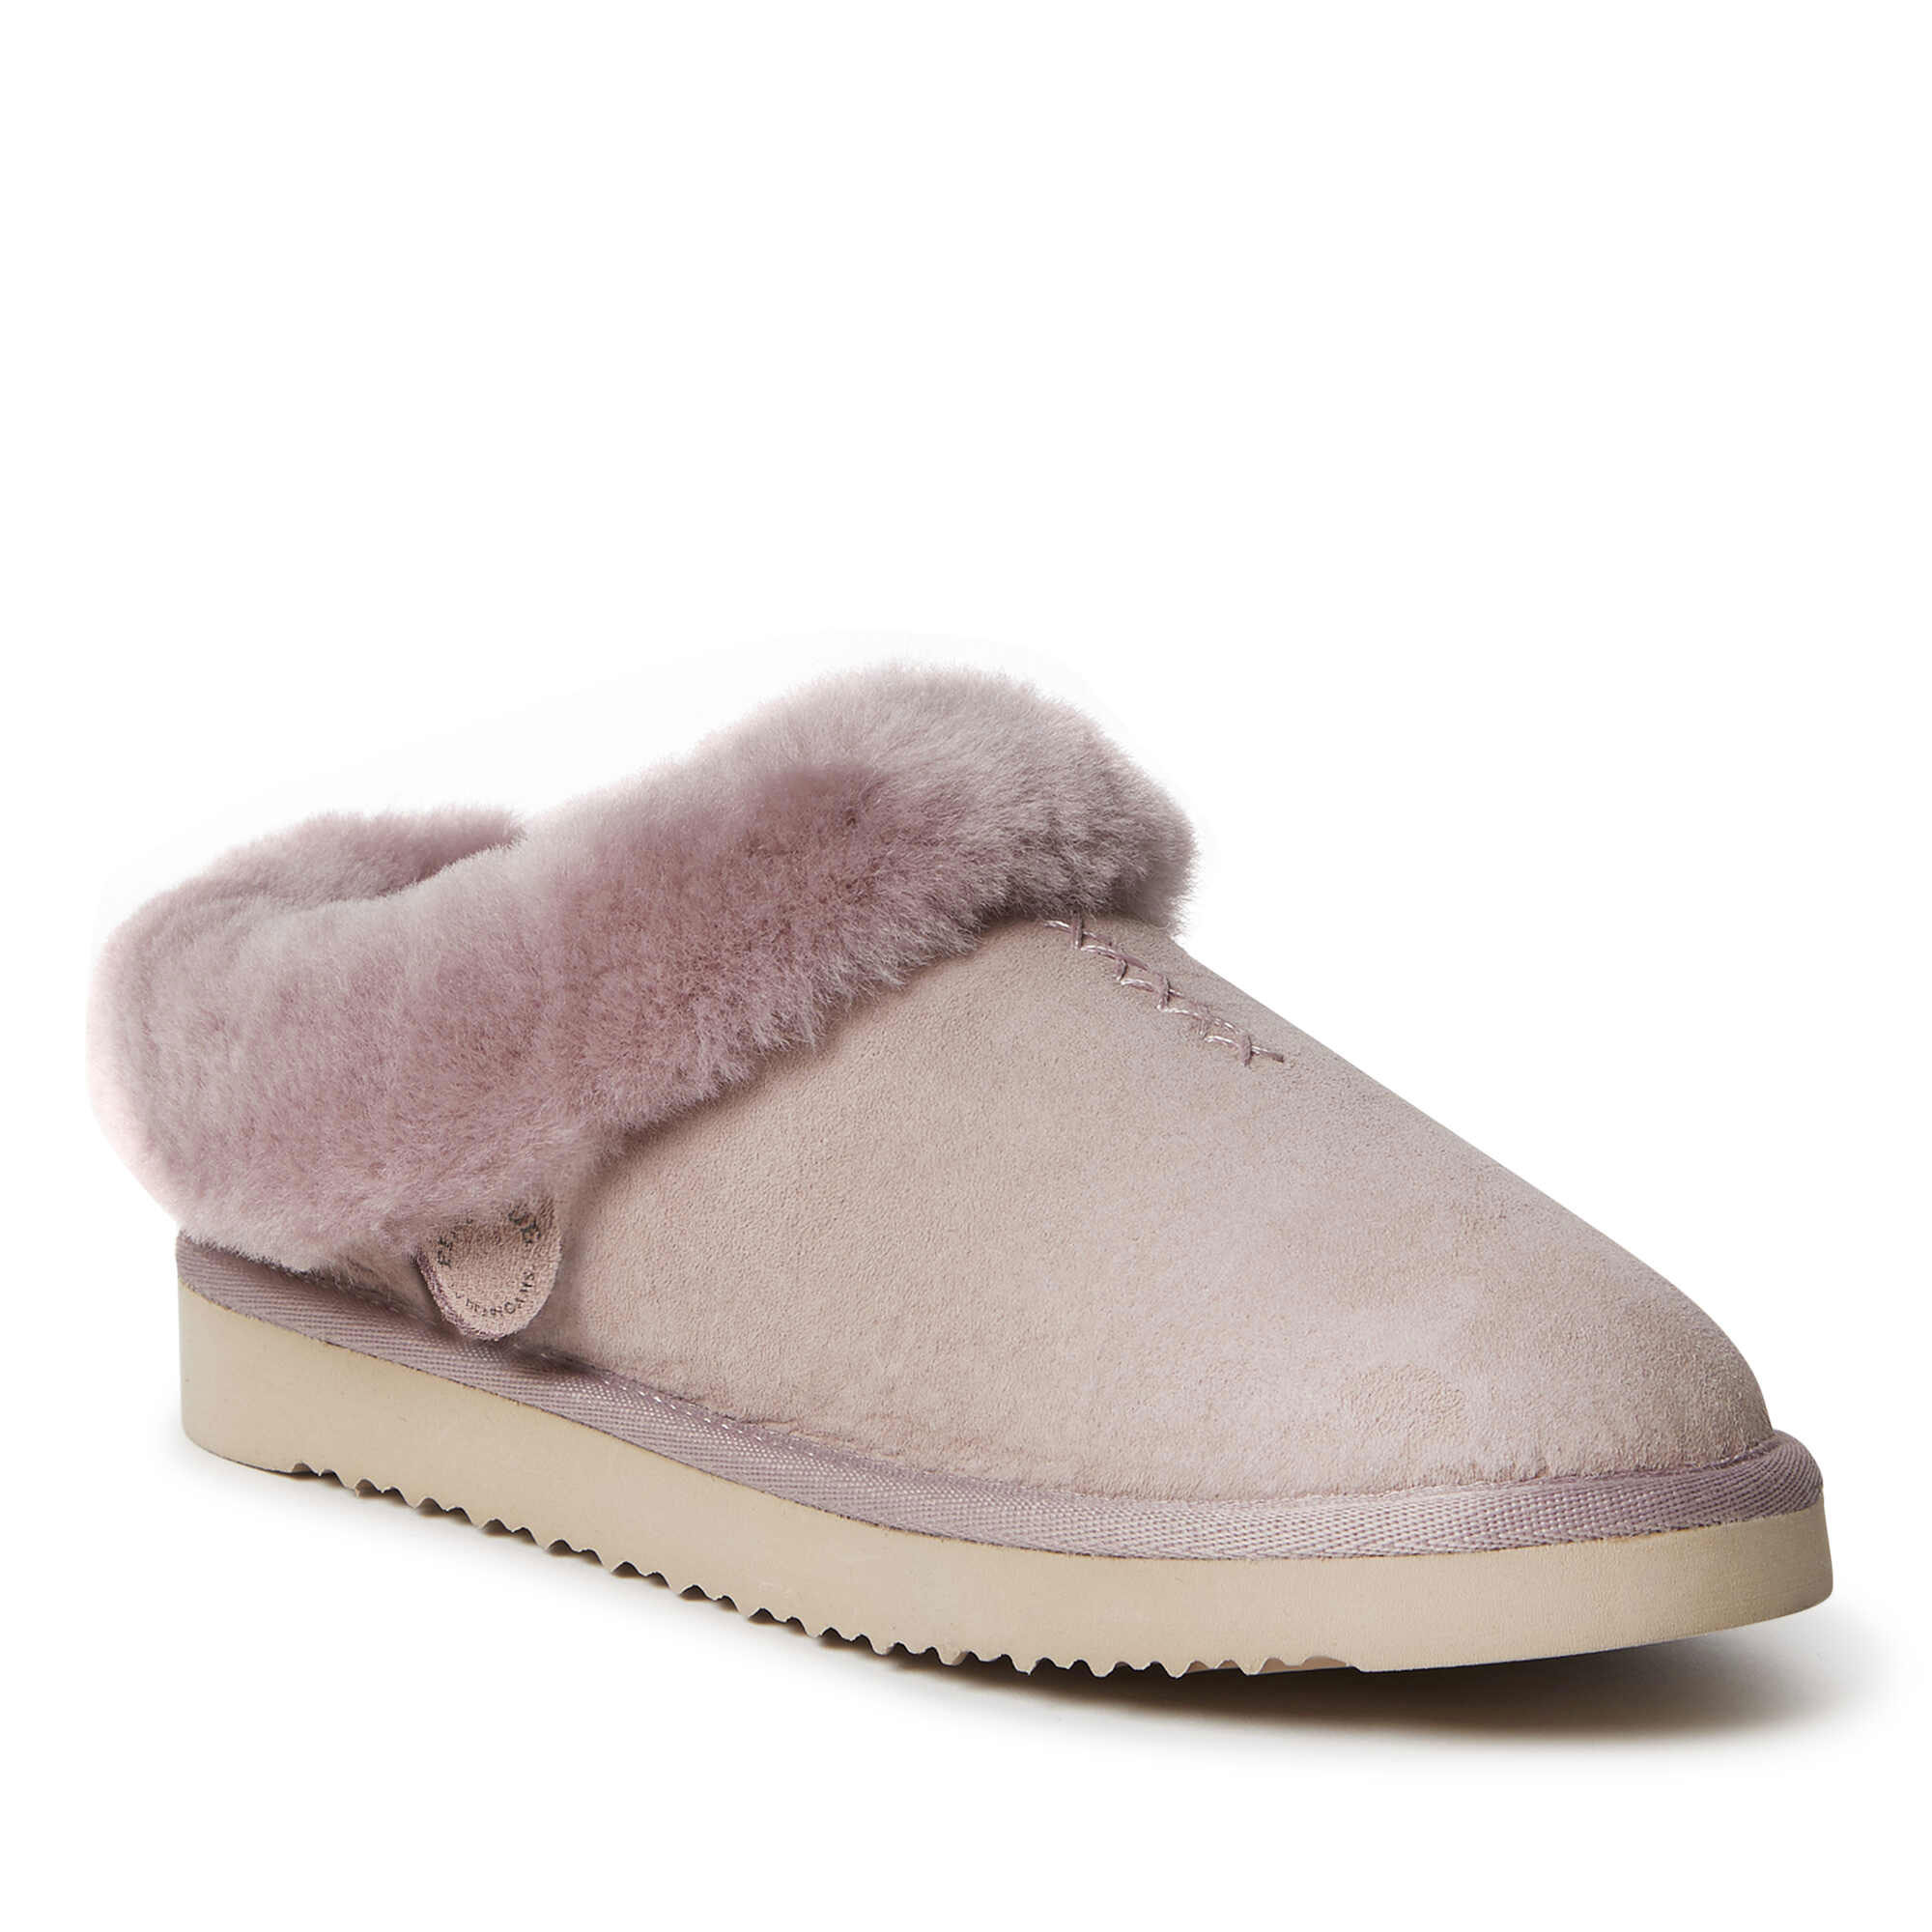 Dearfoam Slippers